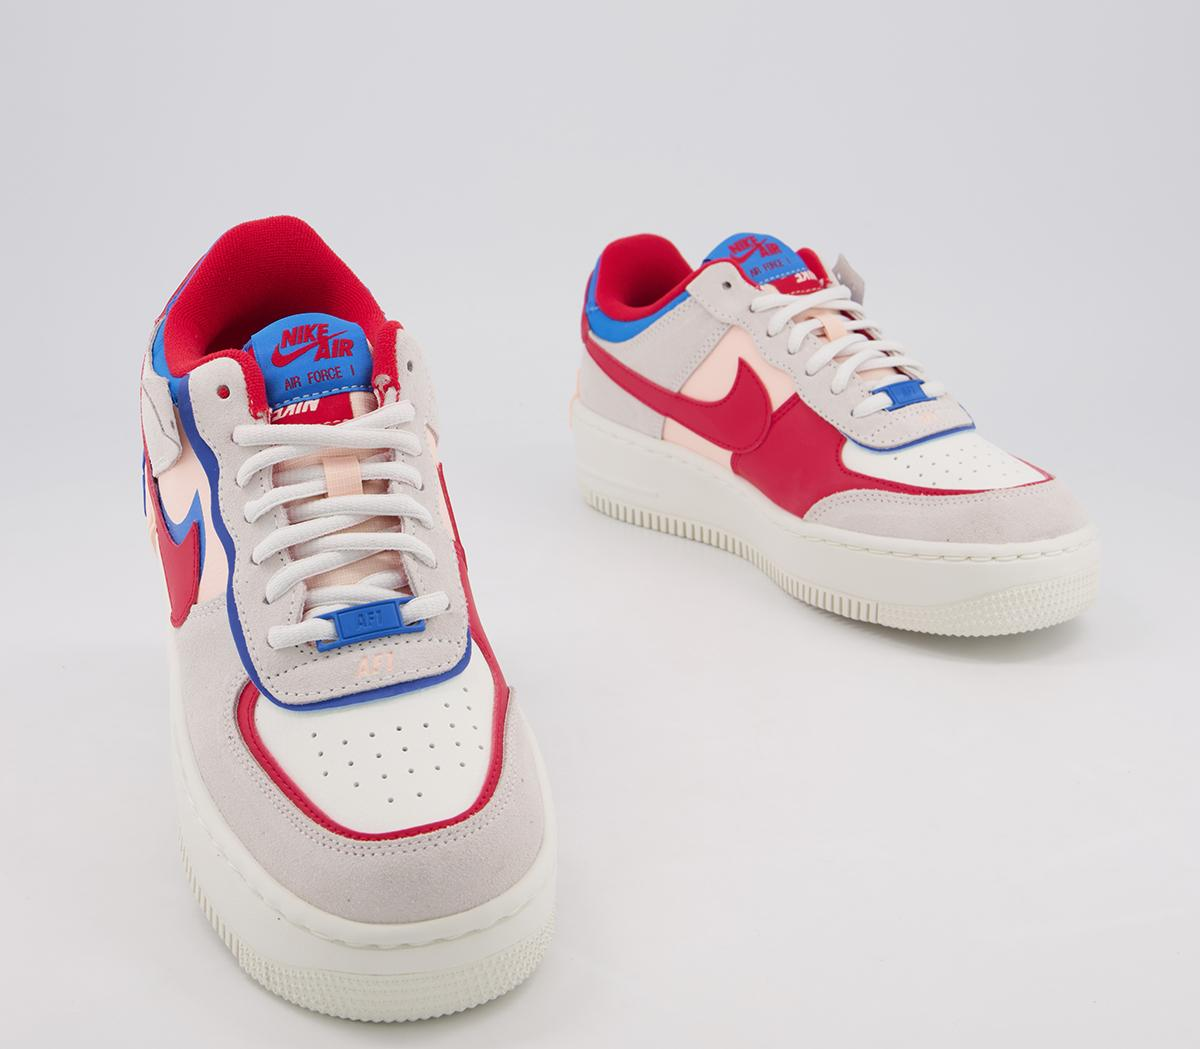 Nike Air Force 1 Shadow Sail University Red Photo Blue Womens Project Sneakers Кроссовки nike air force 1 betrue. project sneakers project sneakers project sneakers